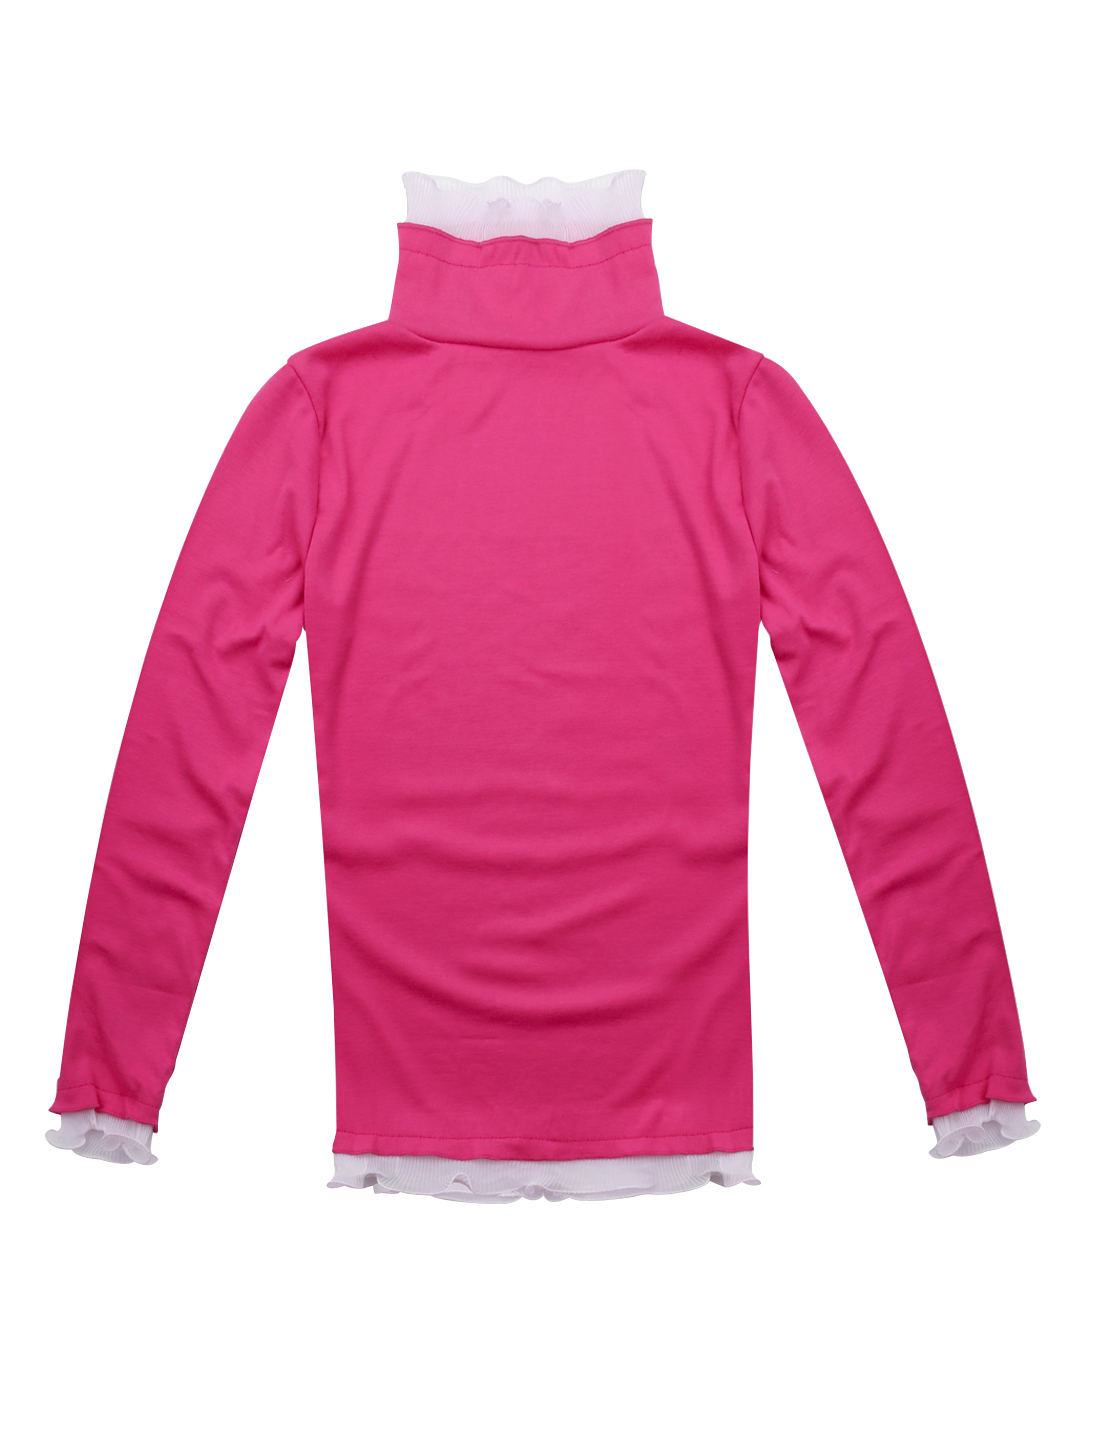 XS Fuchsia Long Sleeves Pullover Casual Tunic Shirt for Ladies